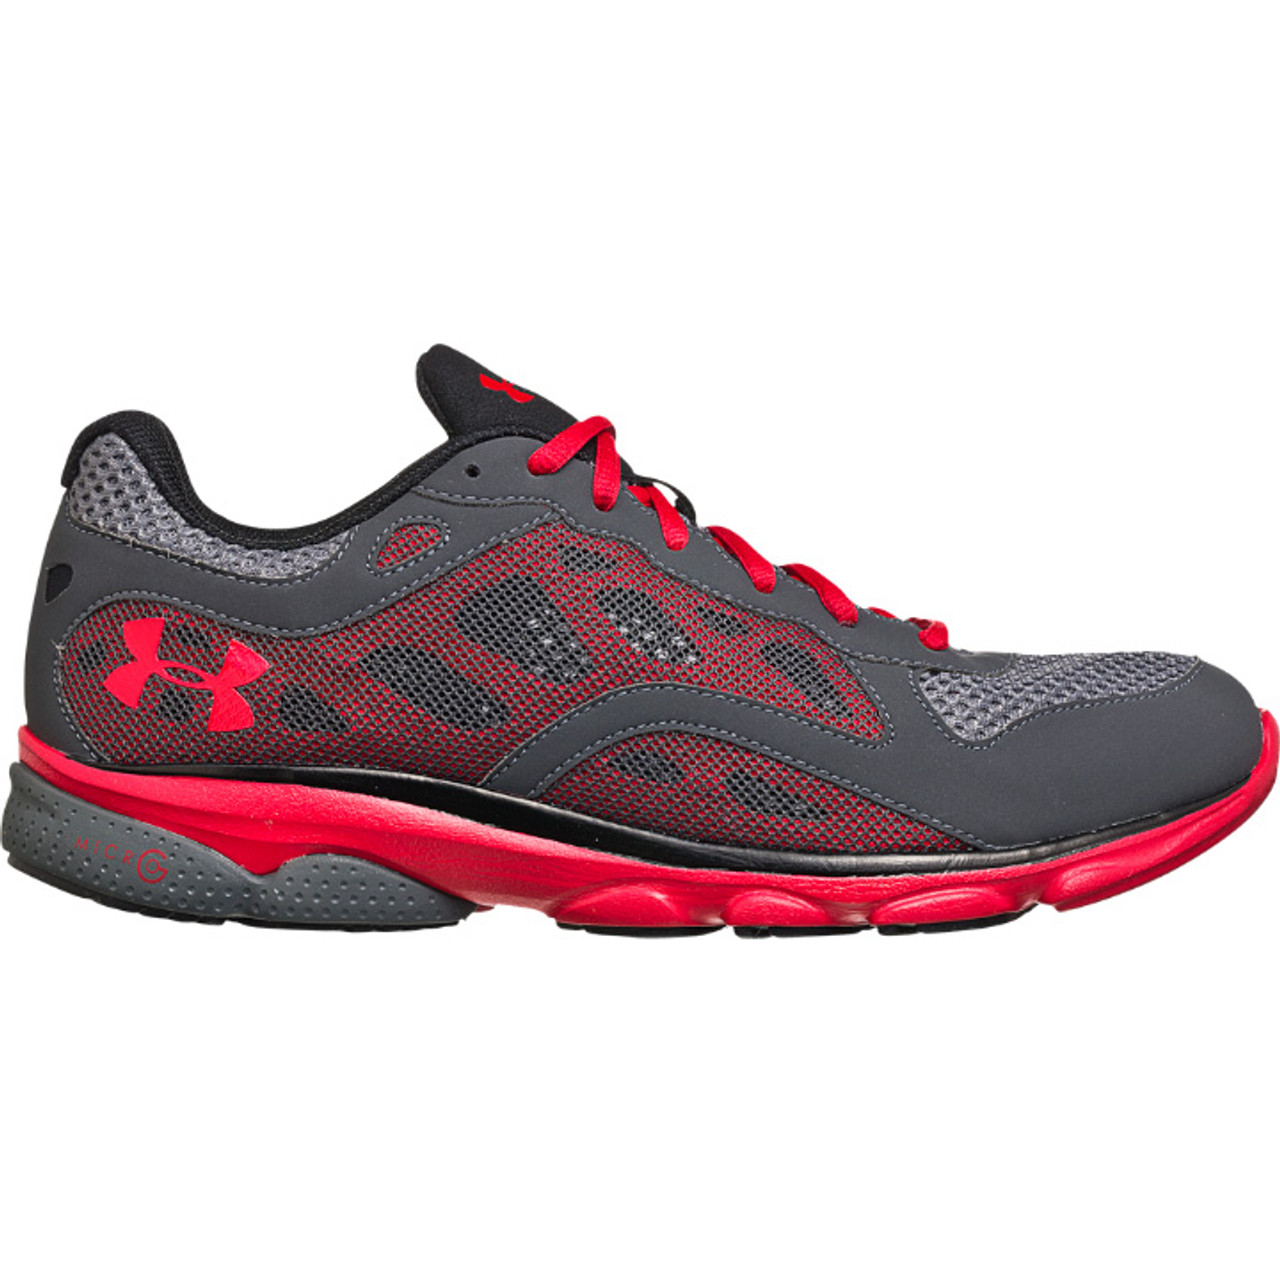 Conciso Mejora Nadie  Mens Under Armour Micro G Ignite Running Shoe Charcoal/Red/Red - Sieverts  Sporting Goods